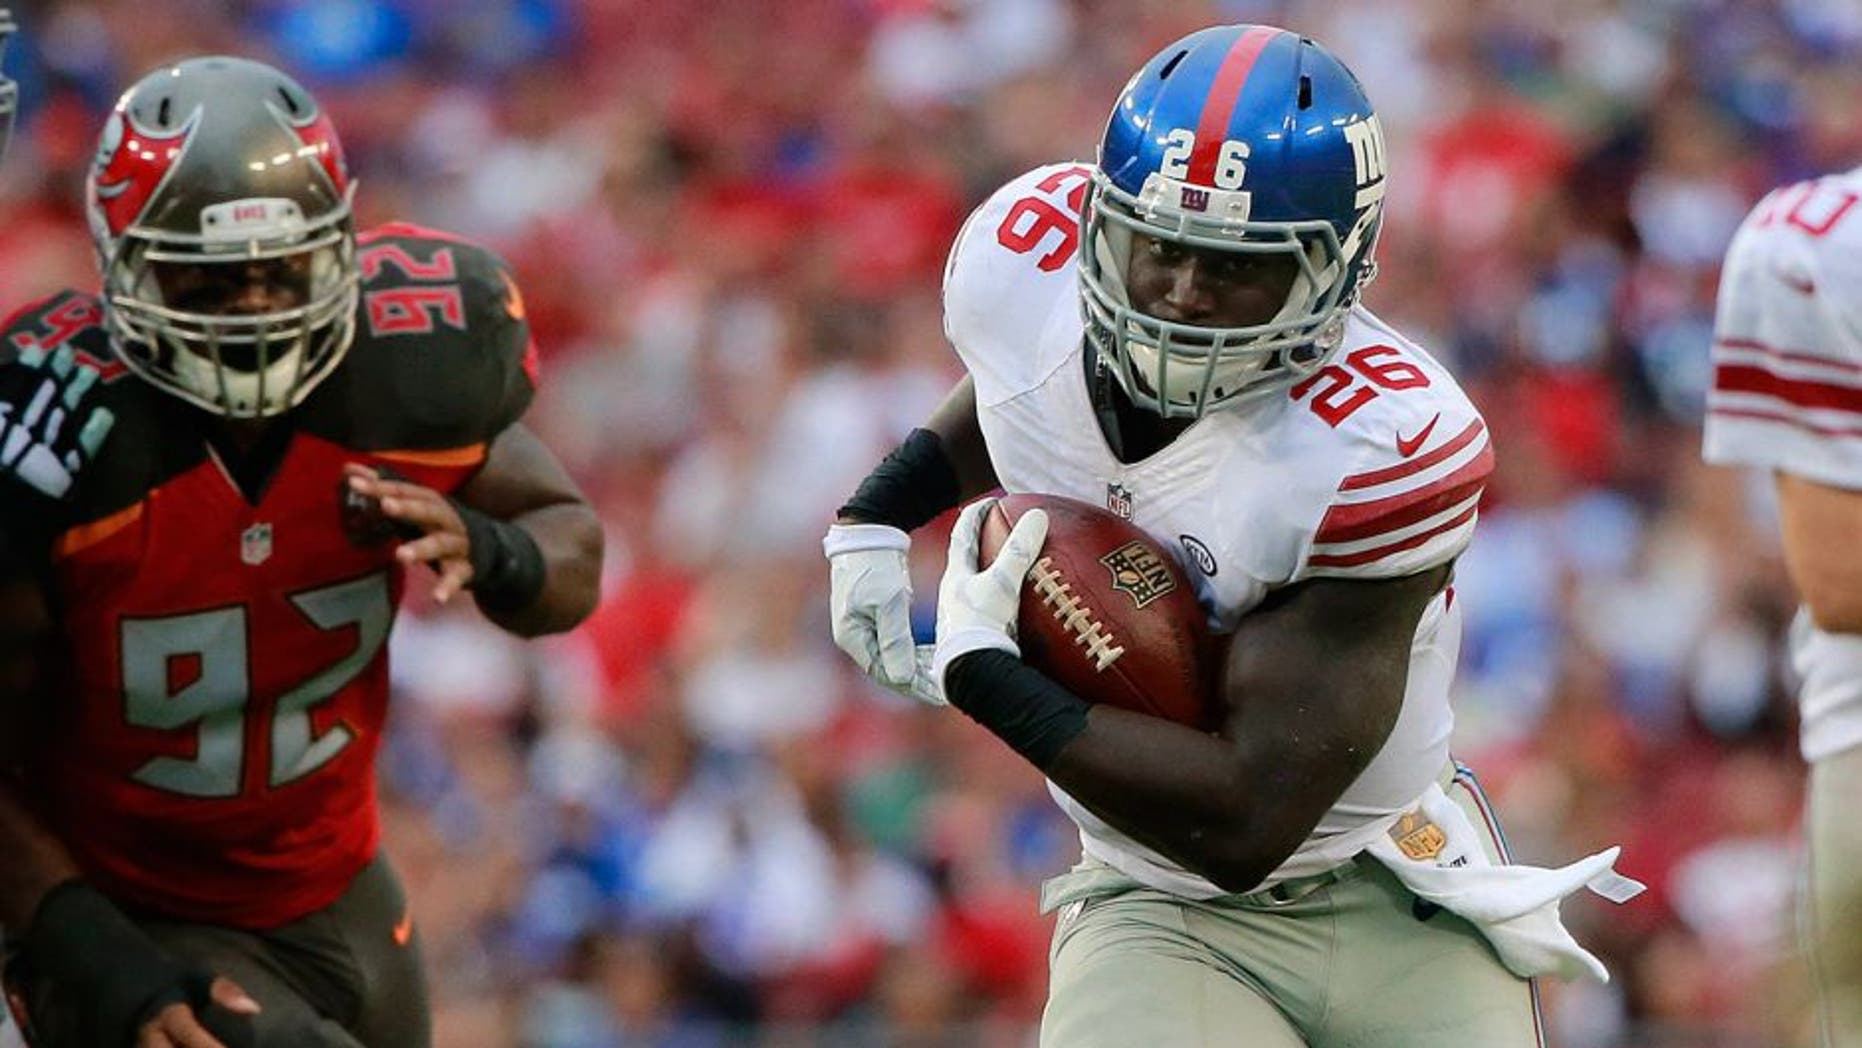 Nov 8, 2015; Tampa, FL, USA; New York Giants running back Orleans Darkwa (26) runs with the ball against the Tampa Bay Buccaneers during the first half at Raymond James Stadium. Mandatory Credit: Kim Klement-USA TODAY Sports